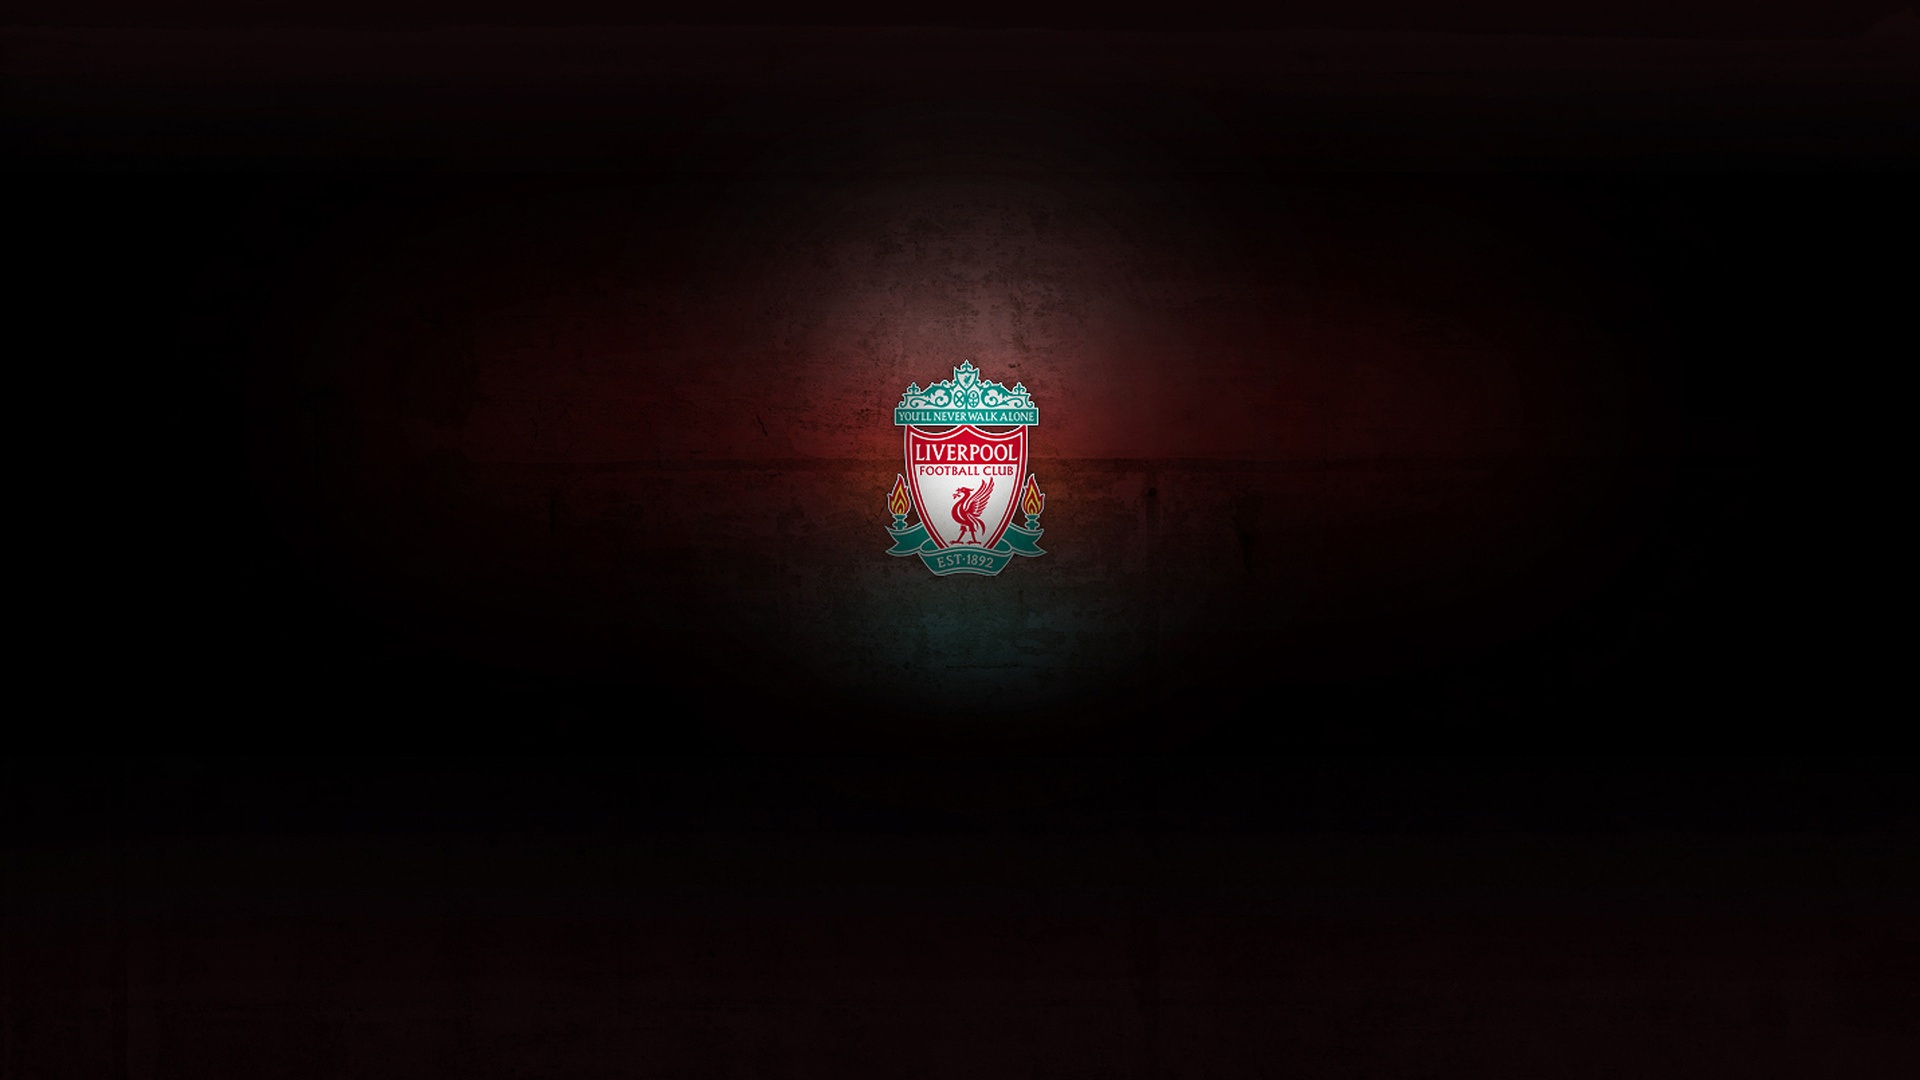 Liverpool Fc Logo 3d: Liverpool Logo Wallpapers HD #11561 Wallpaper